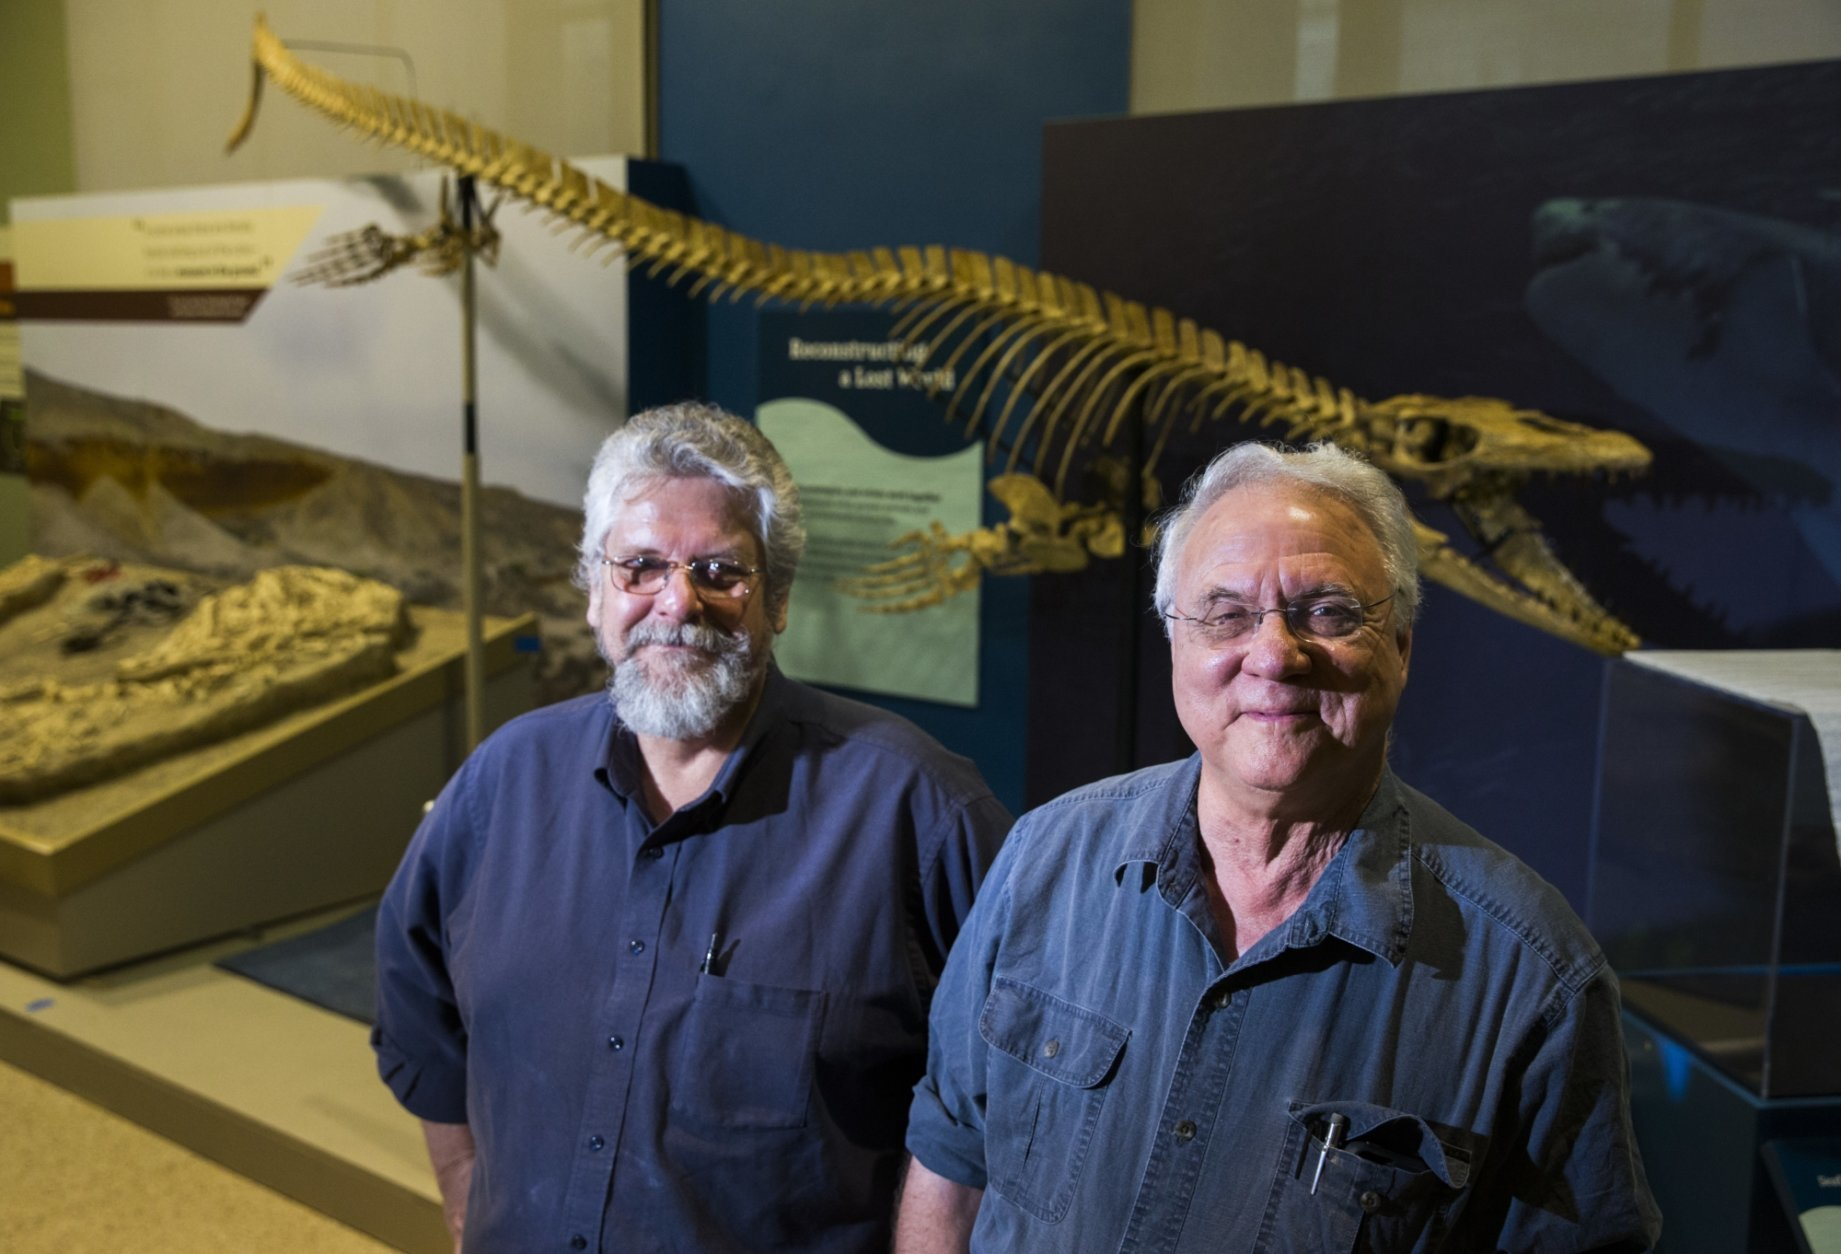 From left, professor Michael Polcyn, senior research fellow and instructor for Study of Earth and Man at SMU and Dr. Louis Jacobs, professor emeritus of earth science and president of ISEM at SMU, pose for a photo in their Sea Monsters exhibit on Oct. 23, 2018 at the Smithsonian National Museum of Natural History in Washington.  The exhibit features Angolan mosasaurs that they and their team have unearthed over the last decade.  (Ashley Landis /The Dallas Morning News via AP)